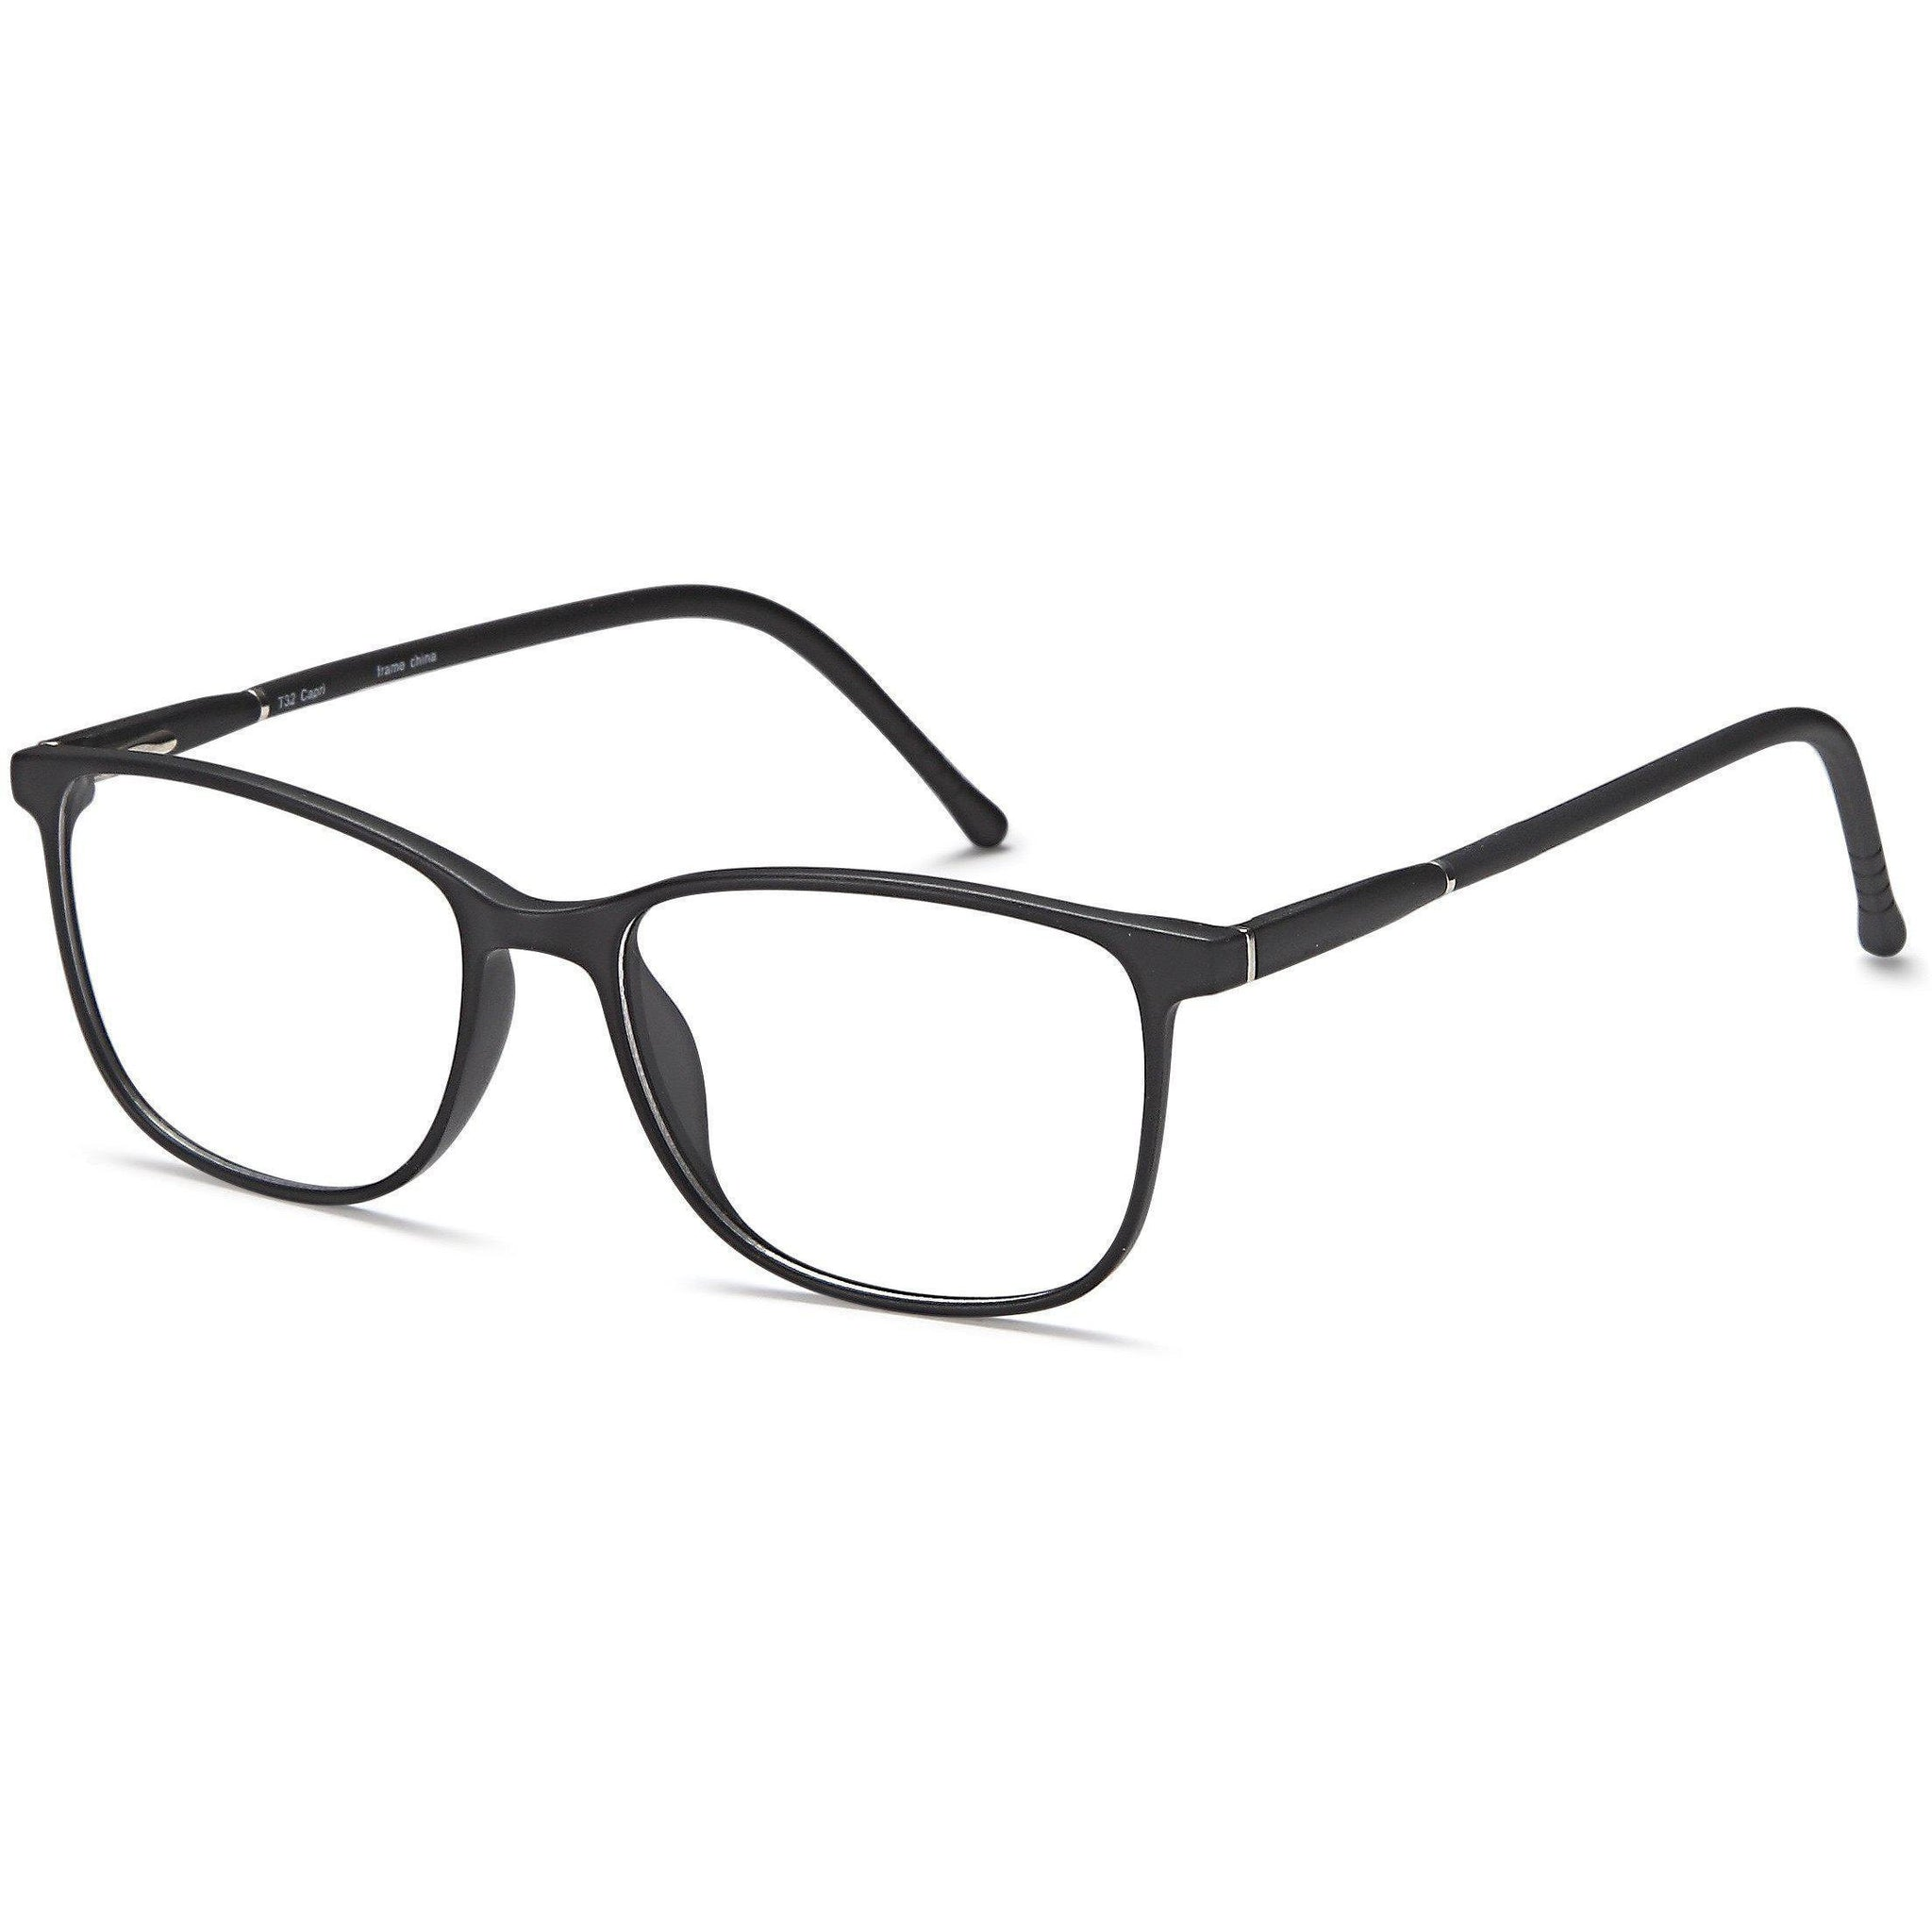 OnTrend Prescription Glasses Riley Eyeglasses Frames